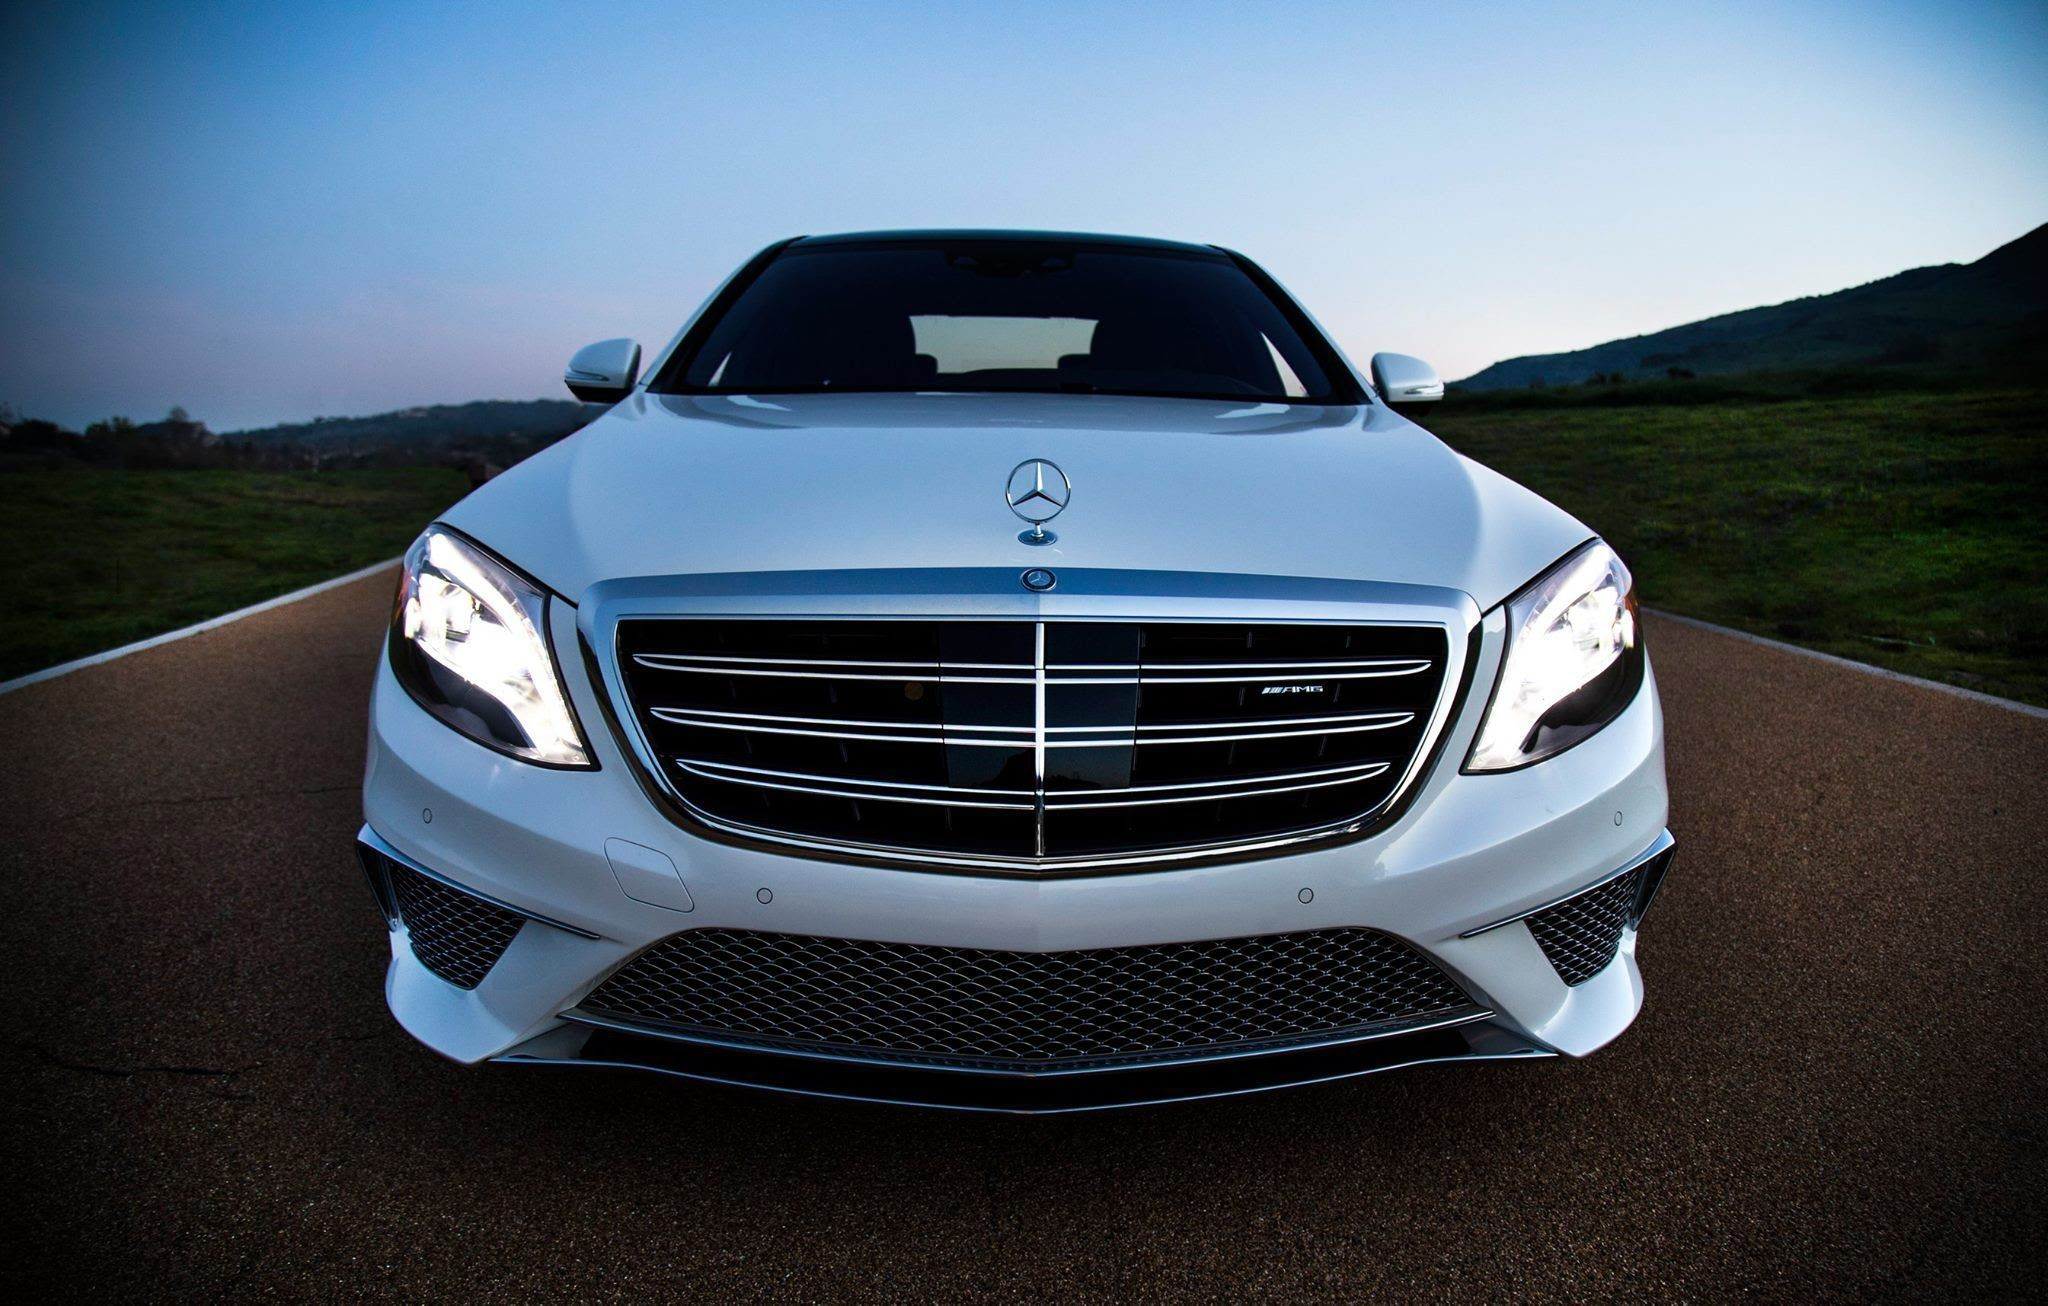 Mercedes Benz S65 AMG Wallpapers